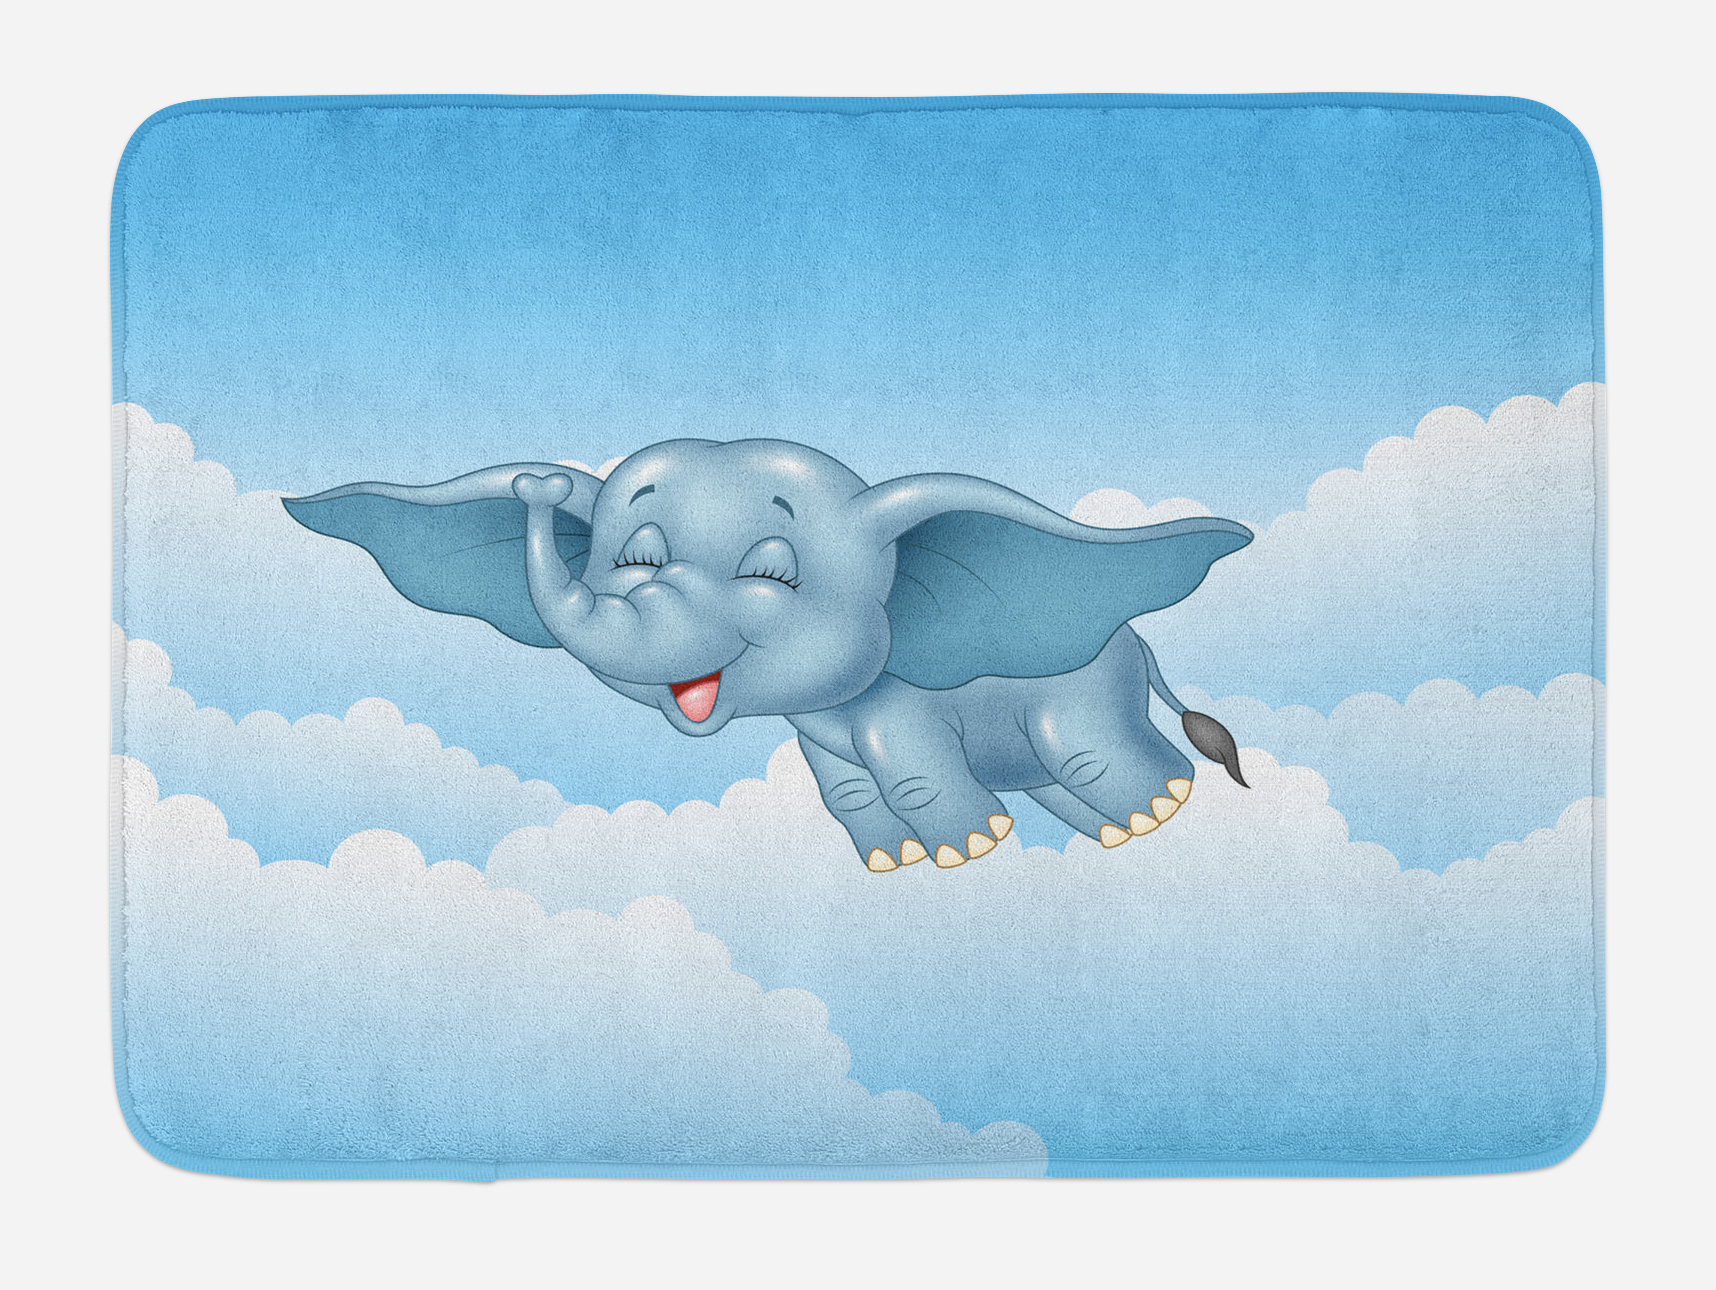 Animal Bath Mat, Cute Baby Flying Elephant Clouds Comic Humor Happiness Kids Caricature... by 3decor llc